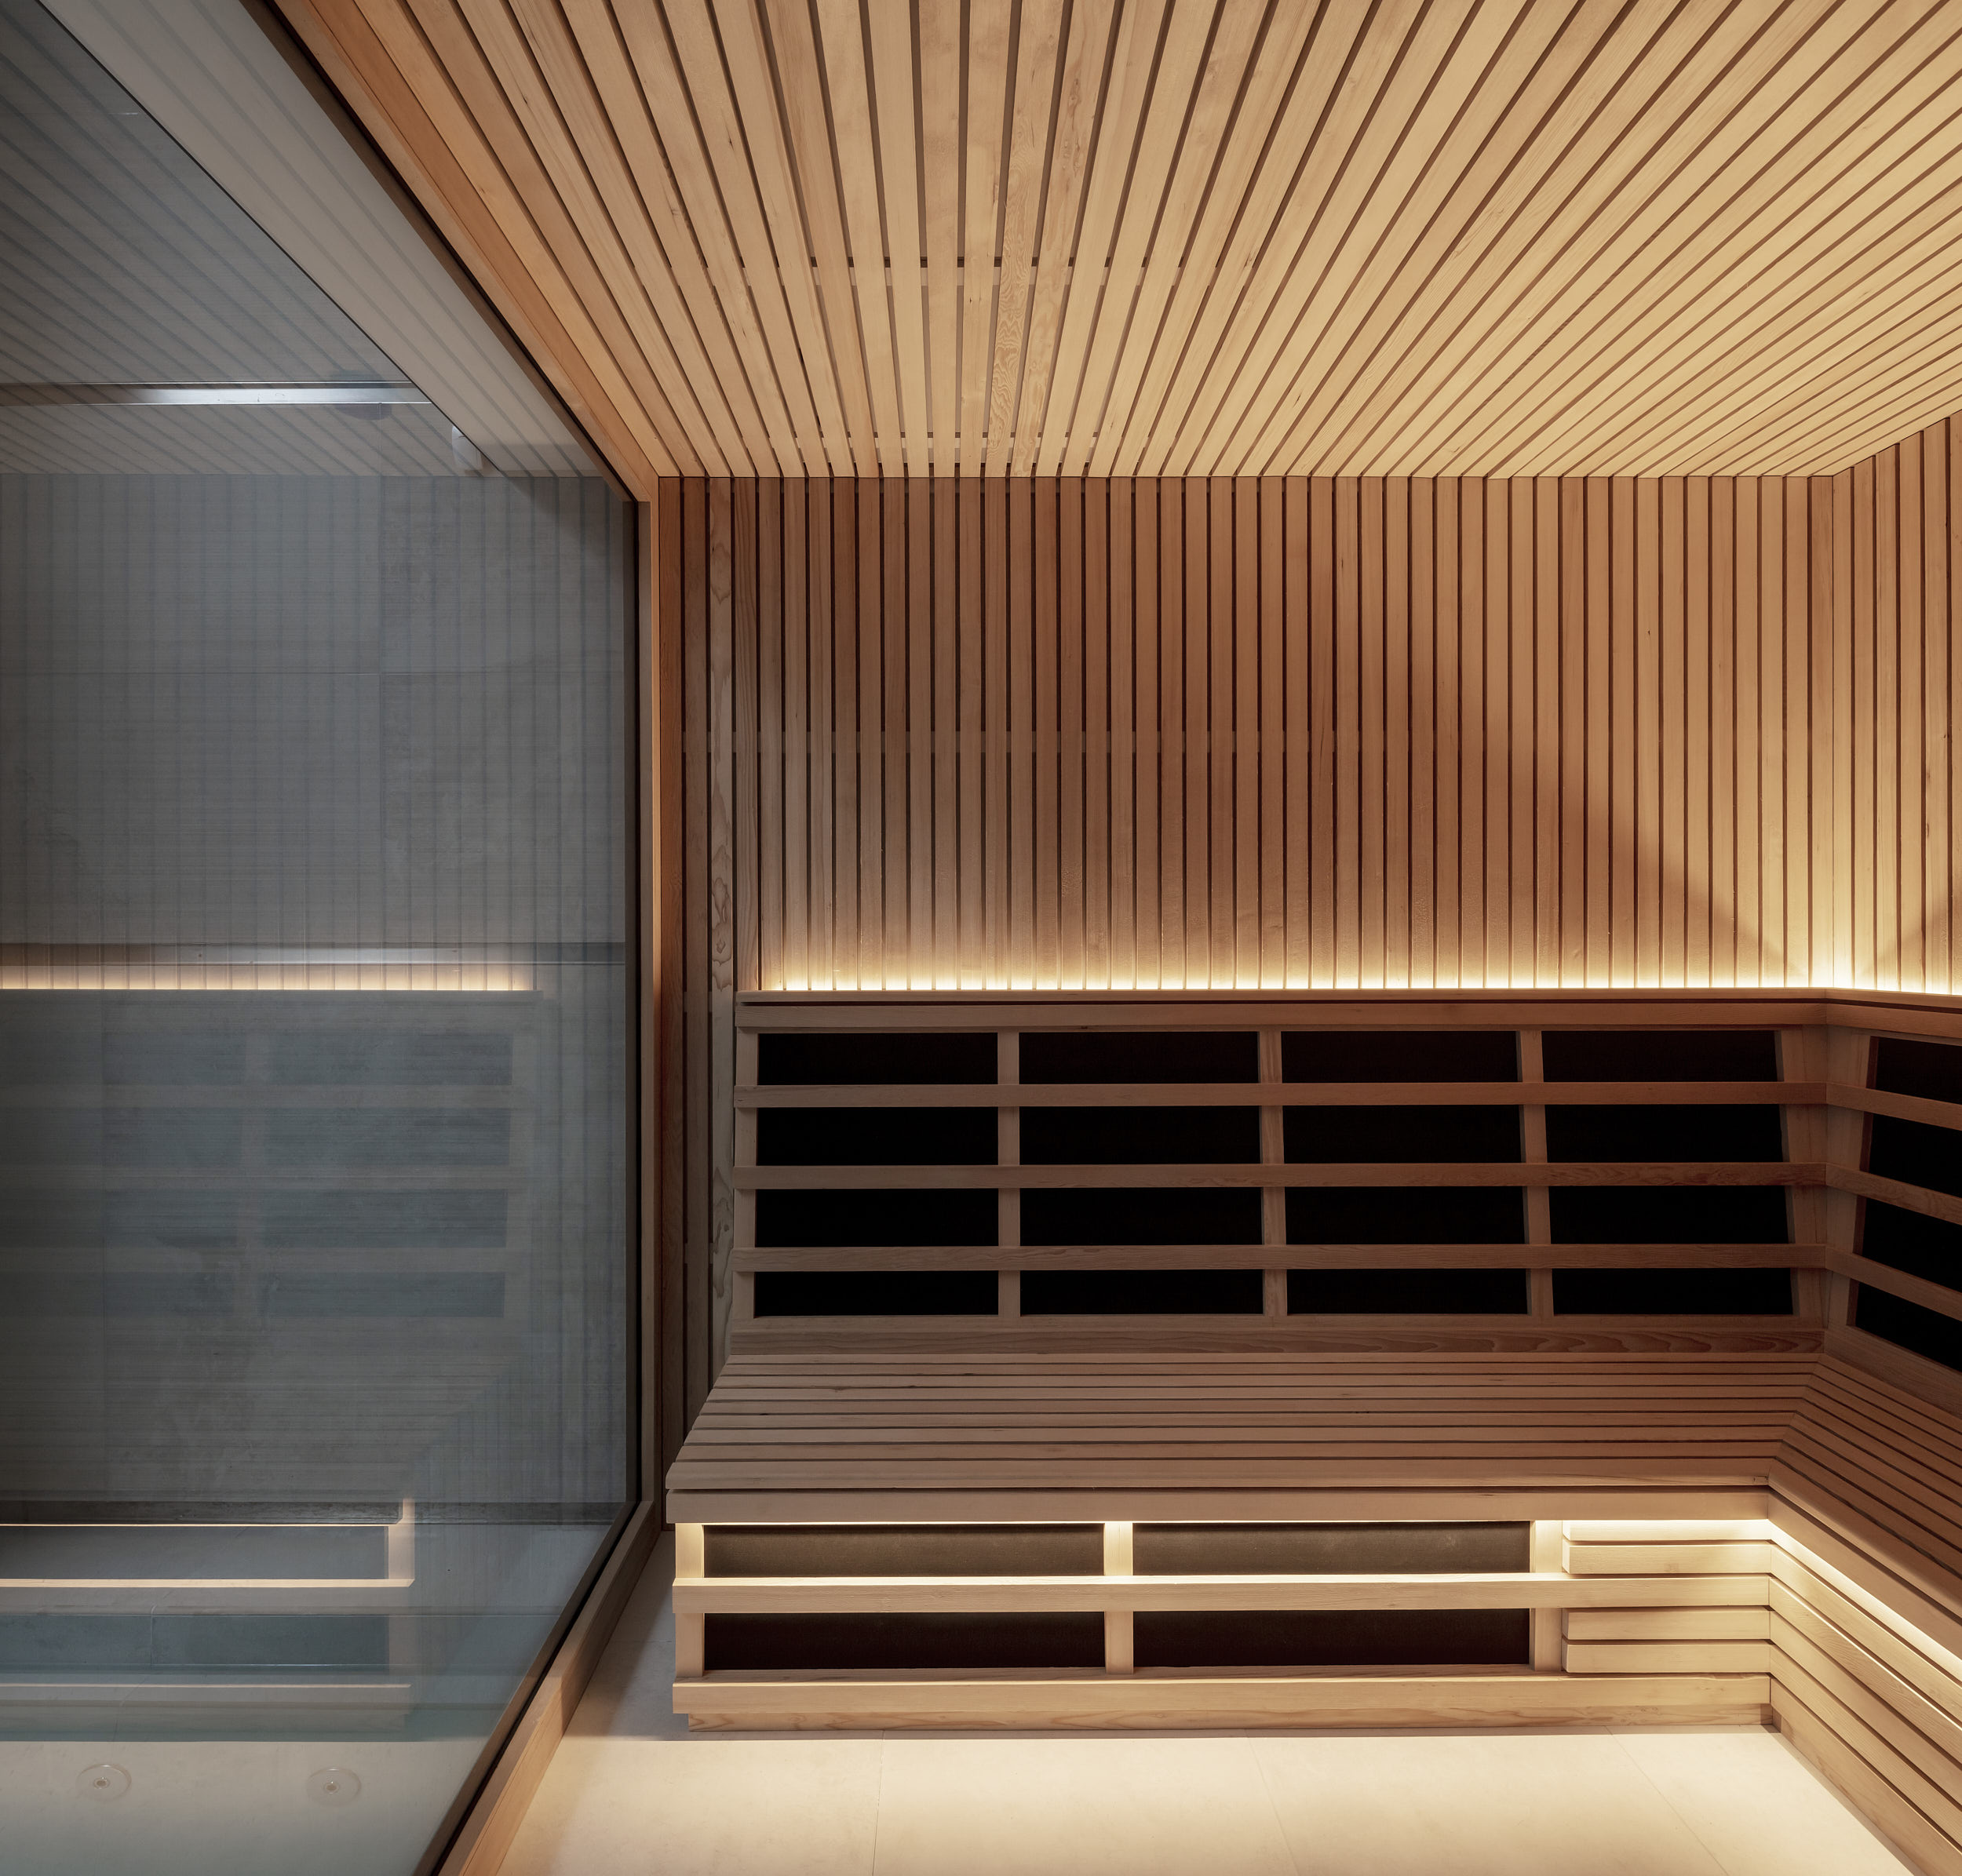 Timber-lined steam-room interior.